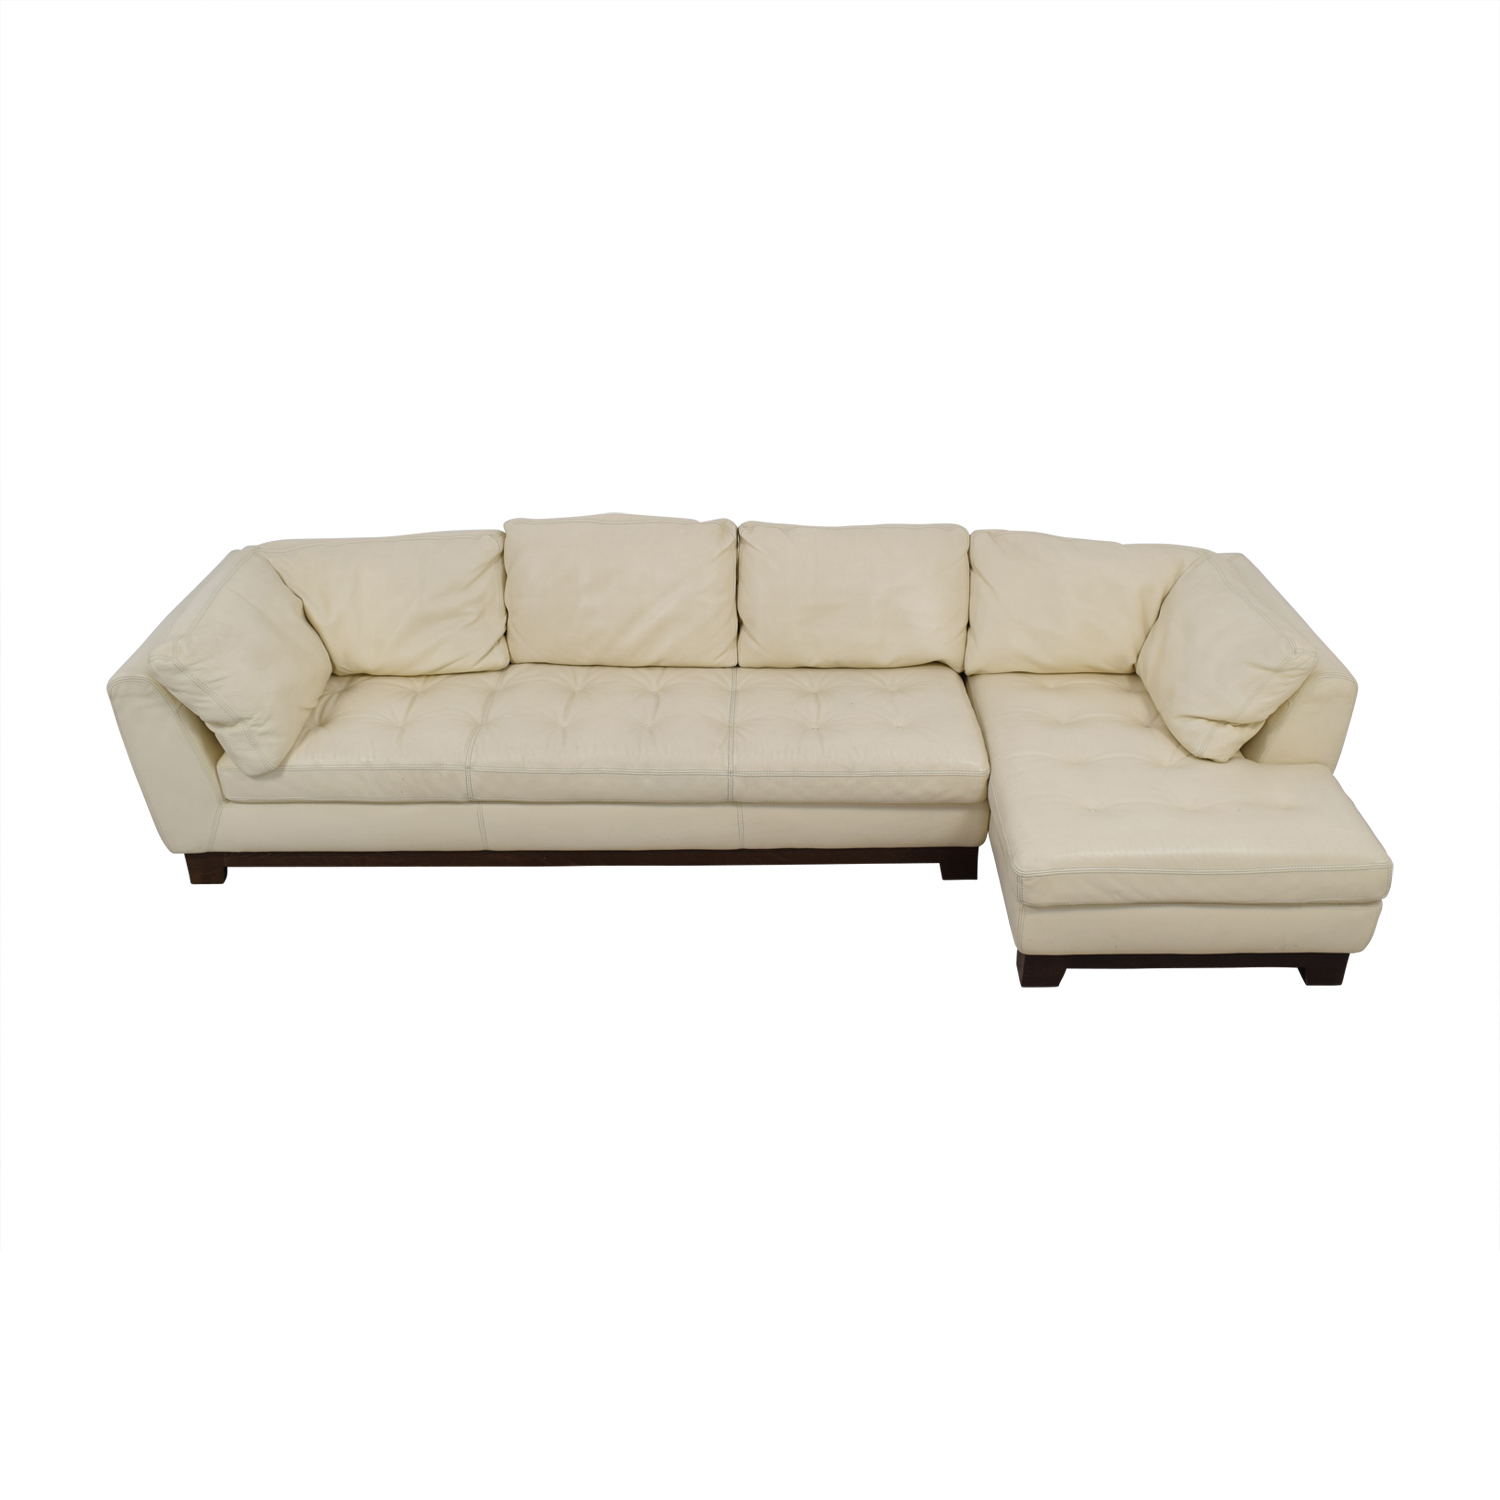 89 Off Roche Bobois Roche Bobois Cream Leather Chaise Sectional Sofas